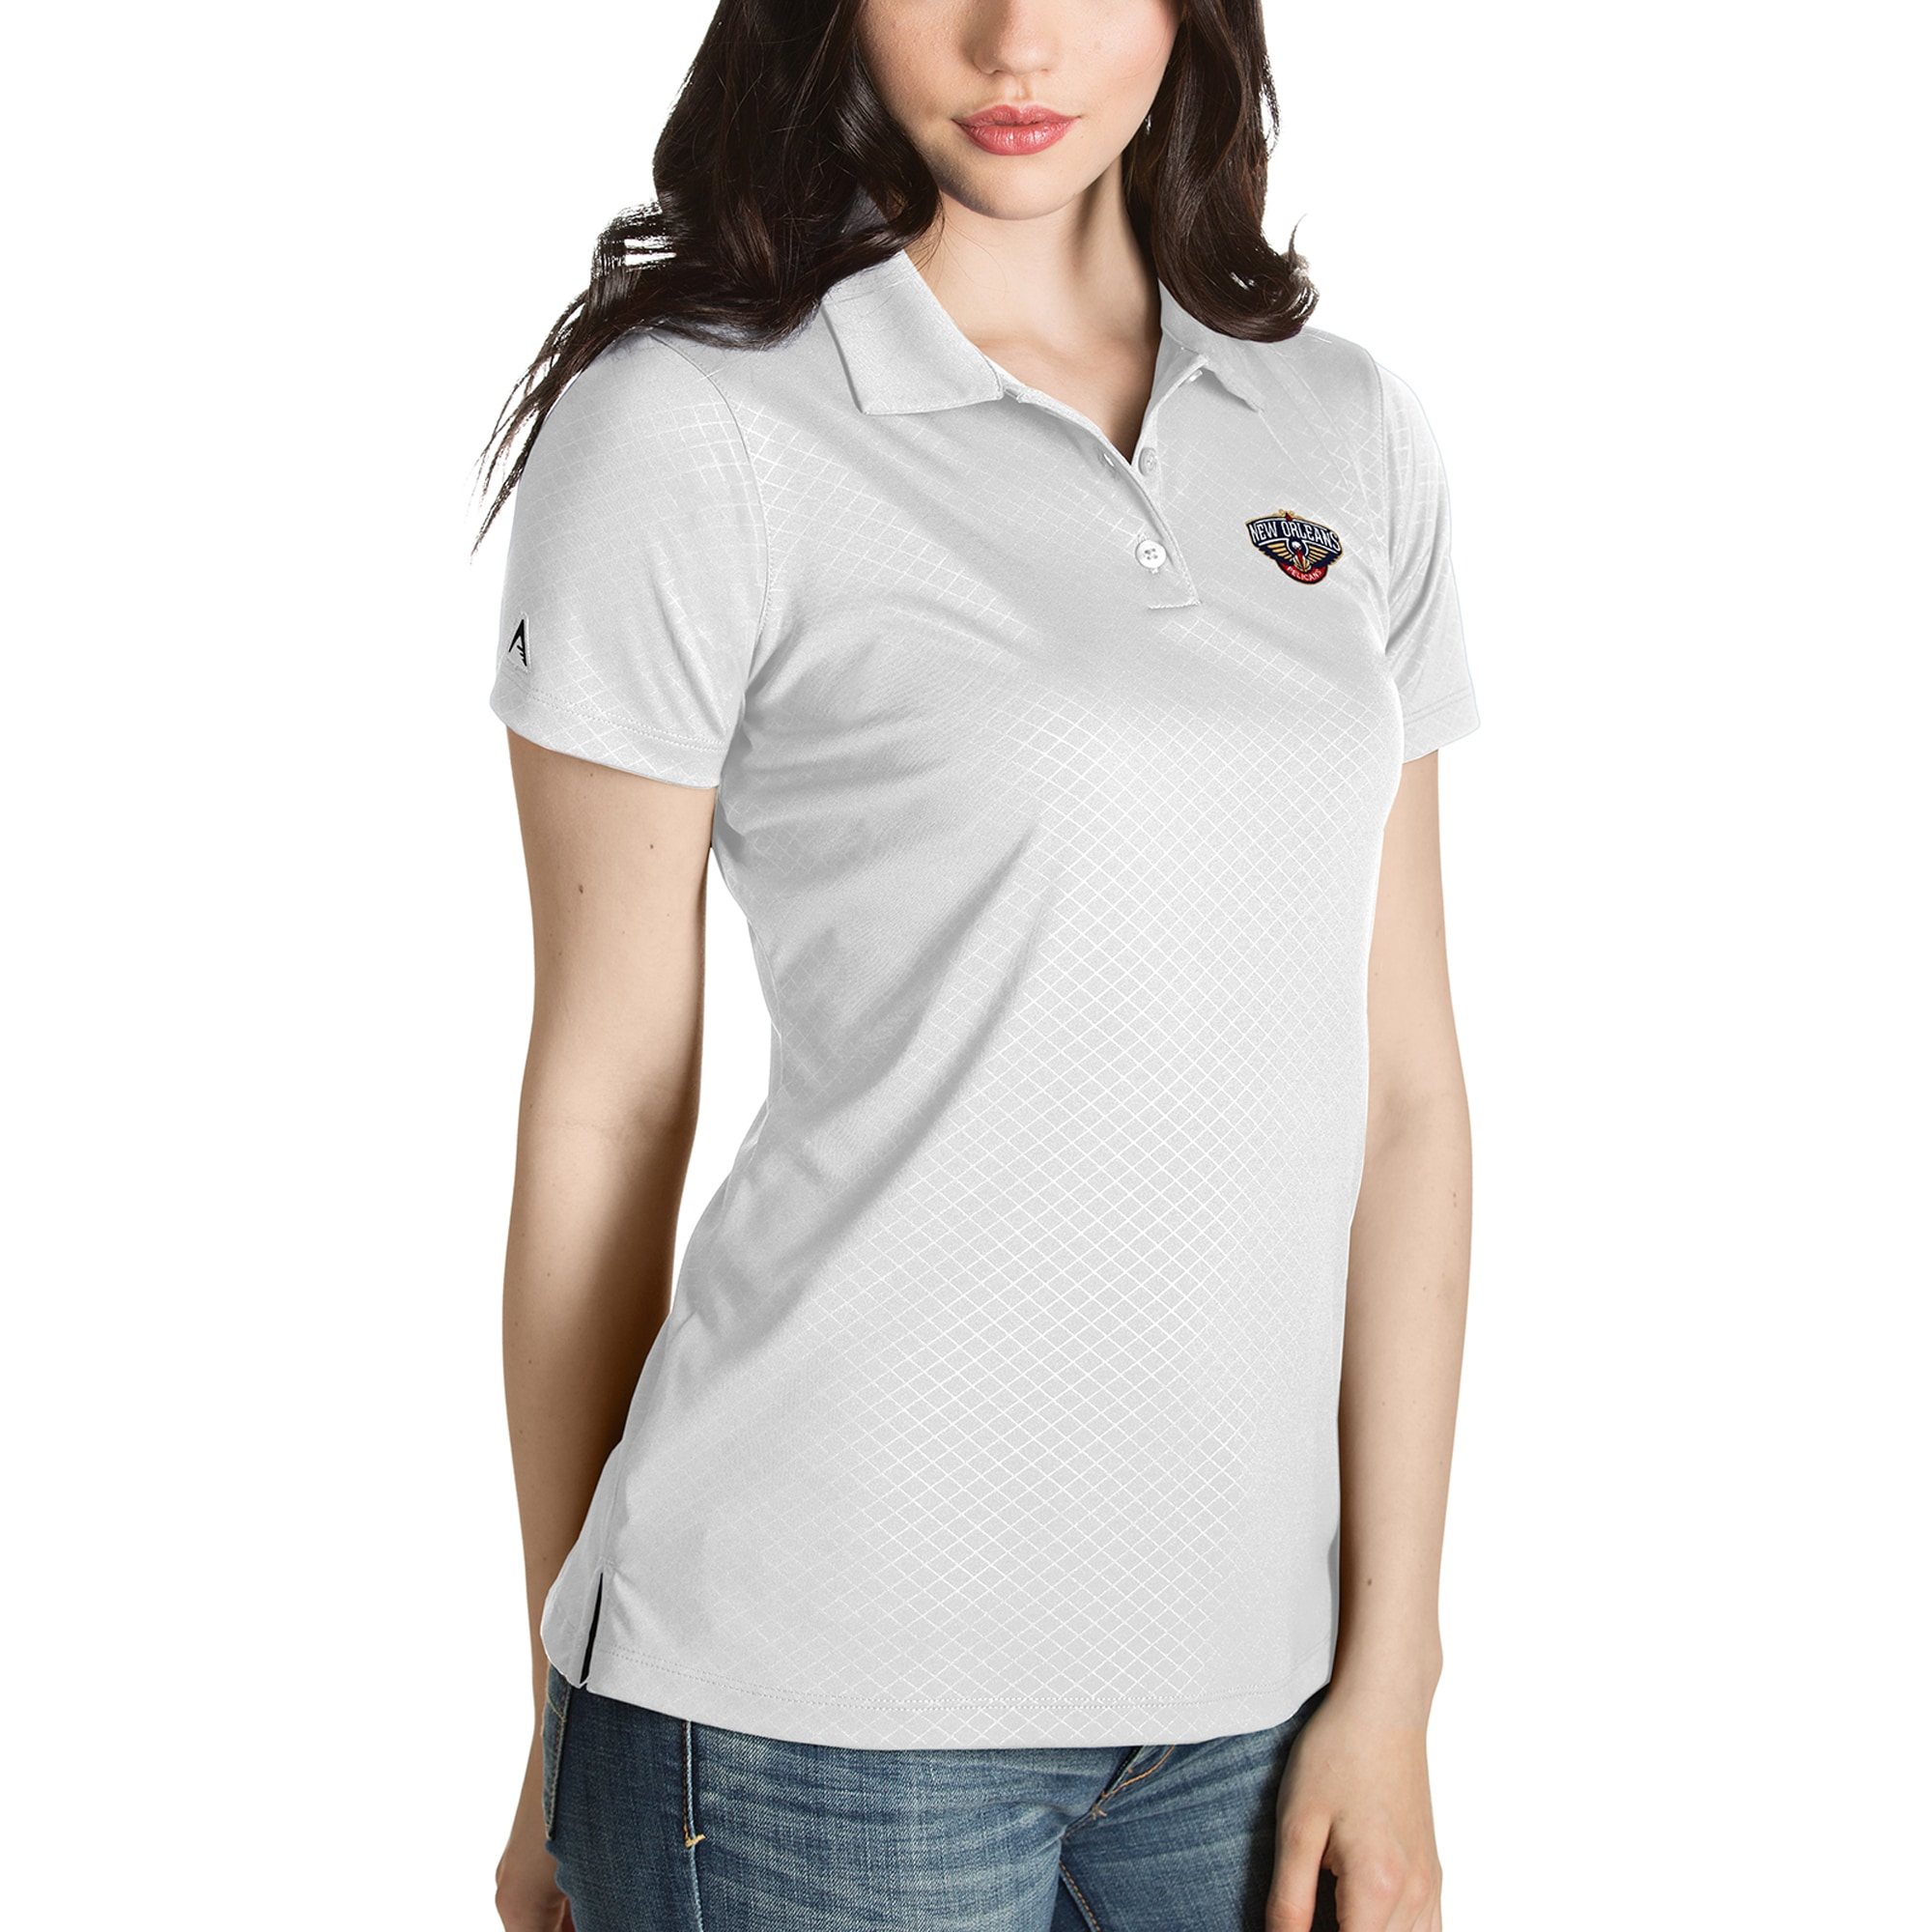 New Orleans Pelicans Antigua Women's Inspire Polo - White